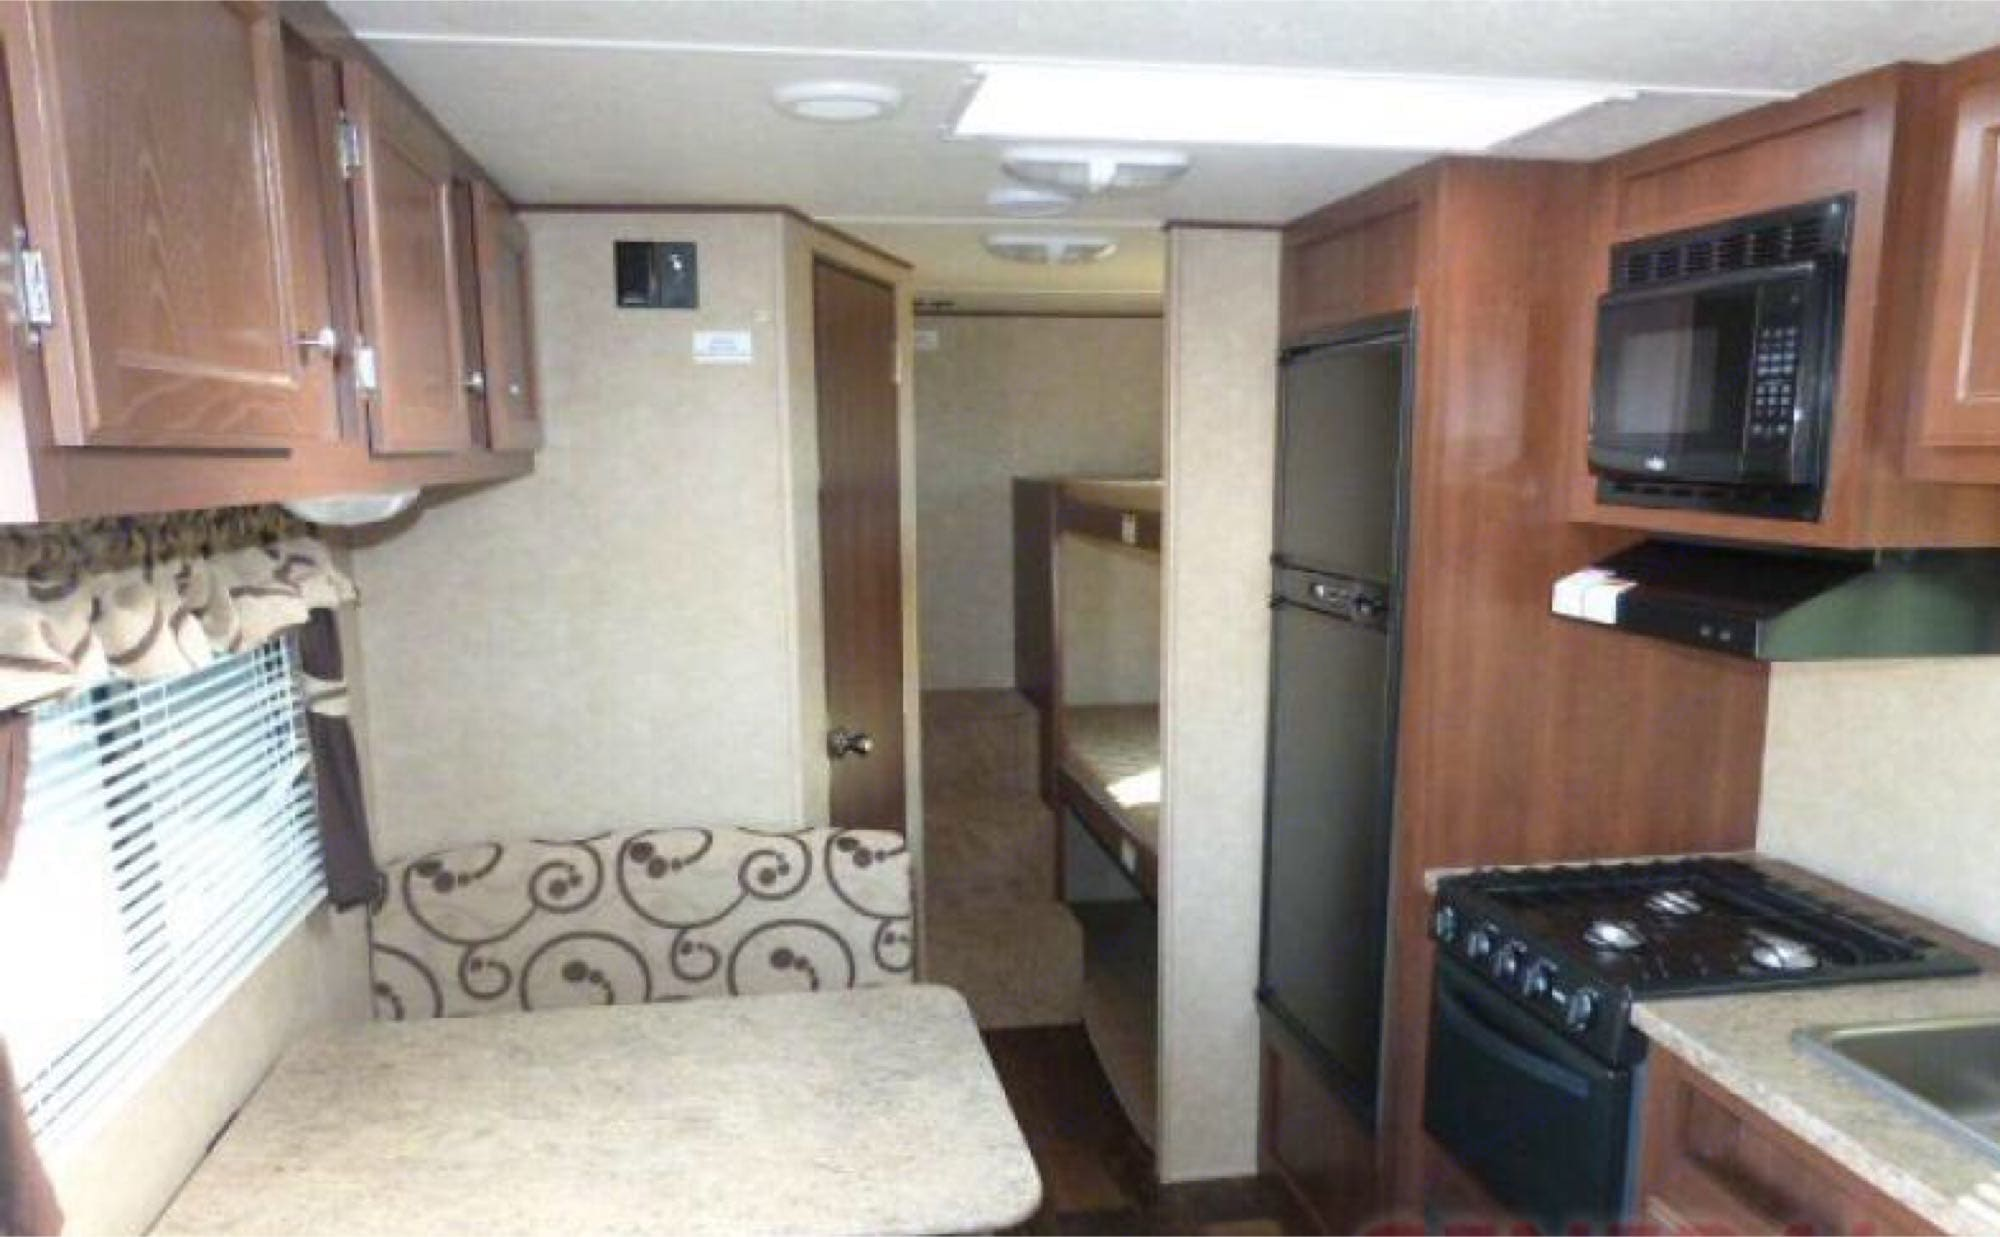 kitchen table converts to additional bed. Three (3) back bunks with nightlights on each bunk.. Crossroads Z-1 2014